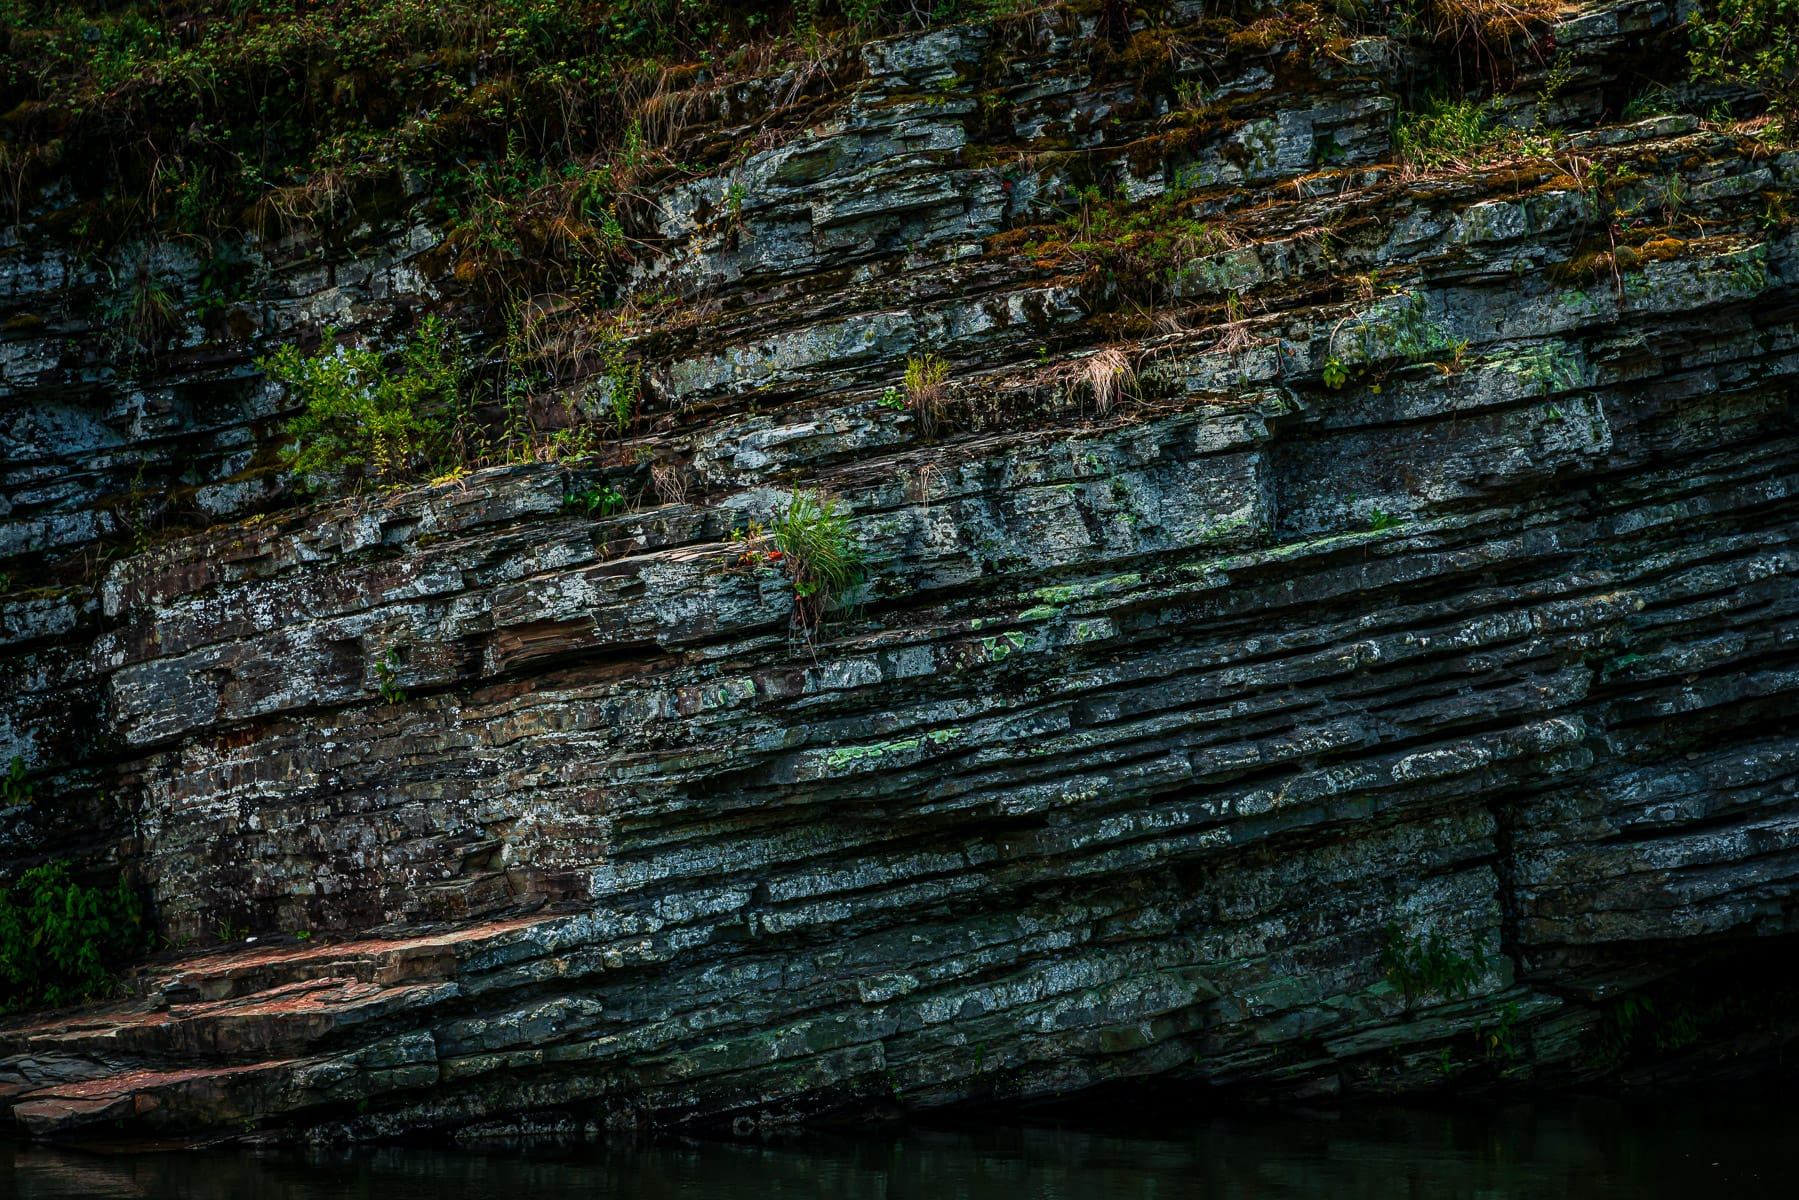 Layers of rock spotted along the Mountain Fork River, Beavers Bend State Park, Oklahoma.